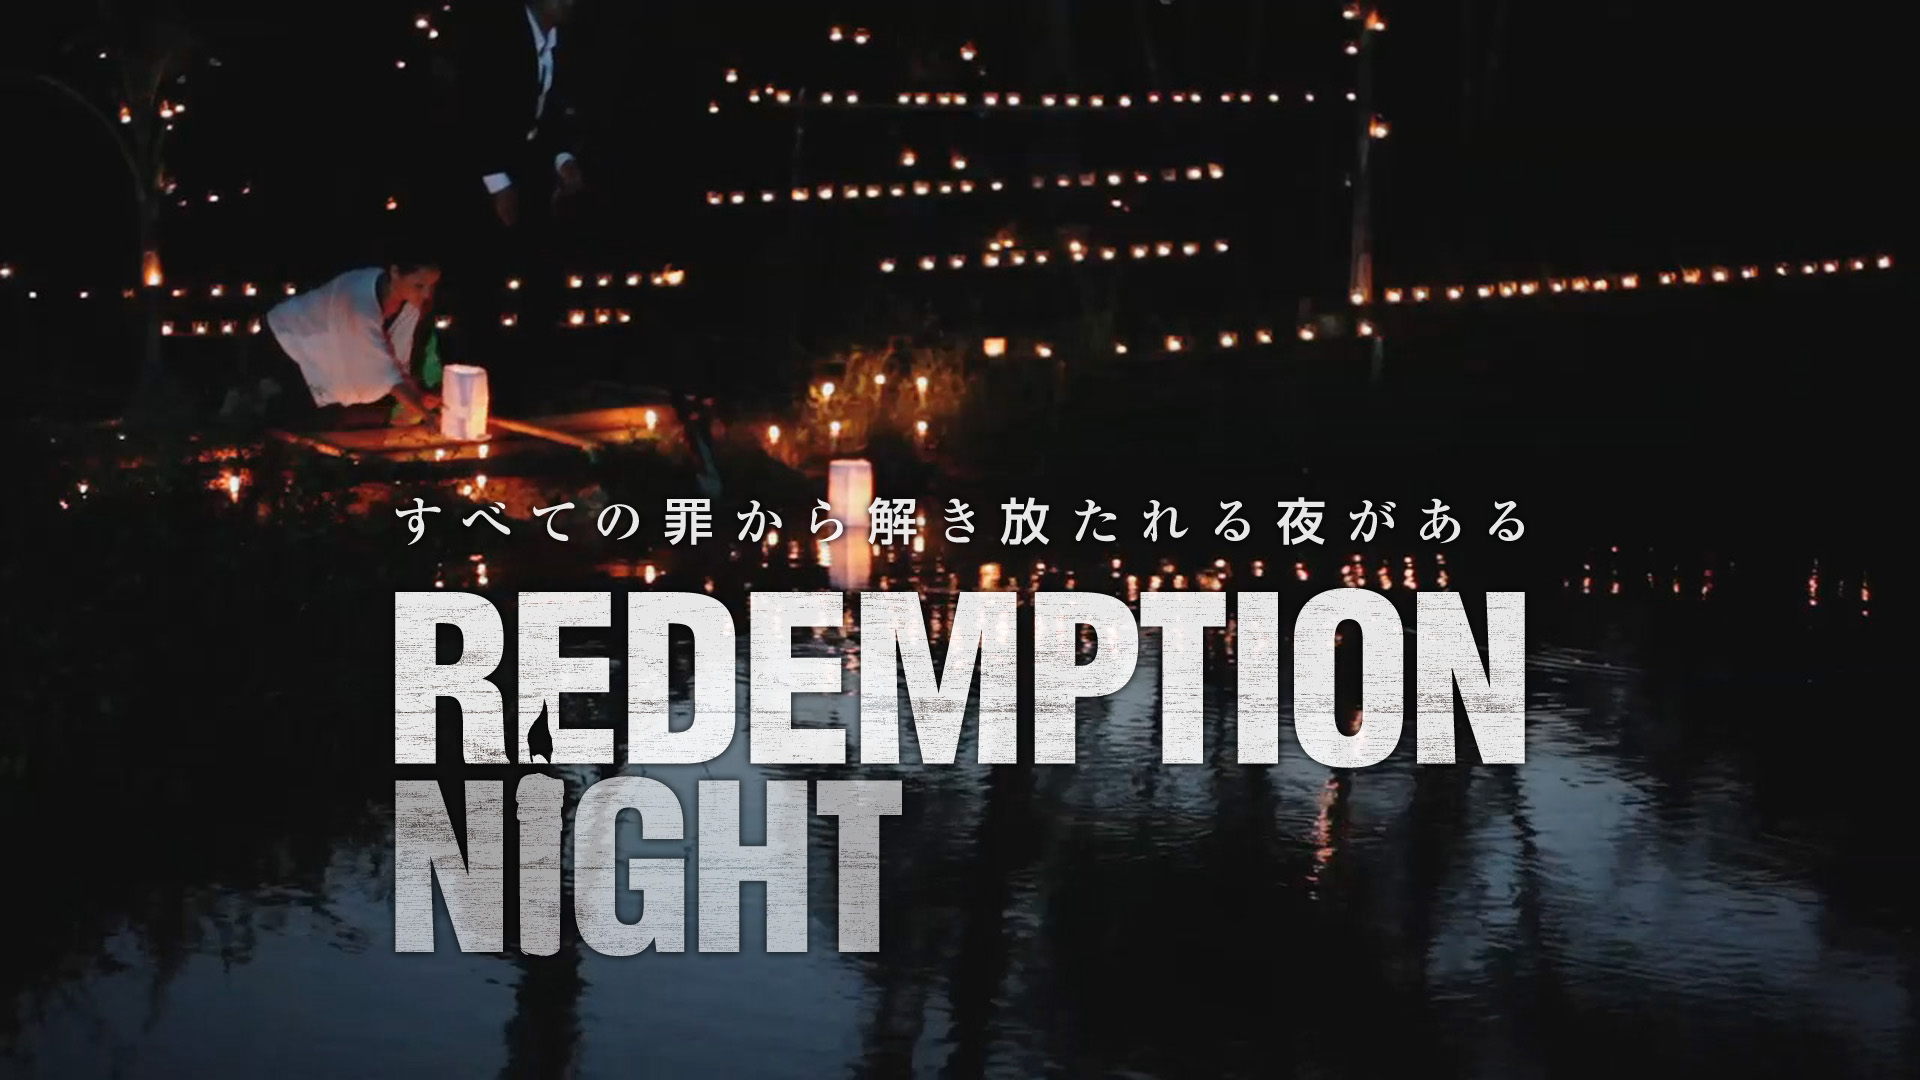 Redemption Night 映画